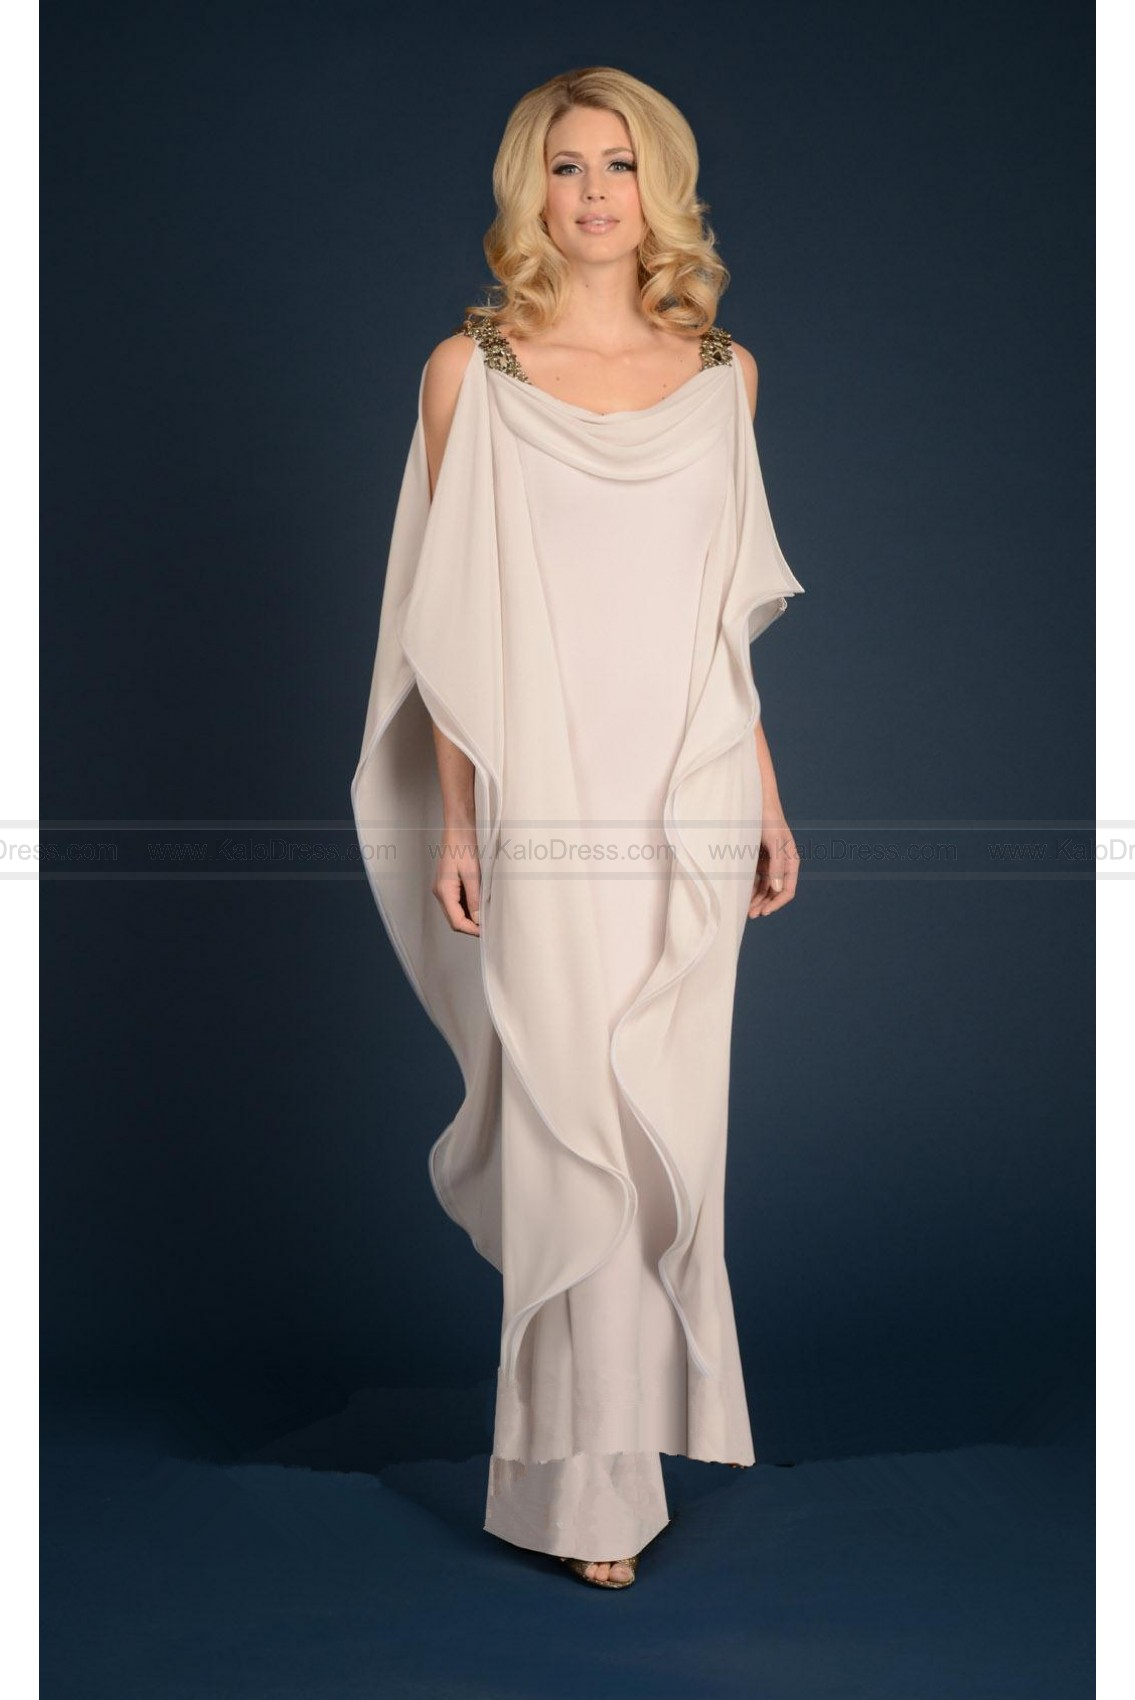 Sublime Ruffle Draped Evening Dress by Daymor - Evening Dresses - Special Occasion